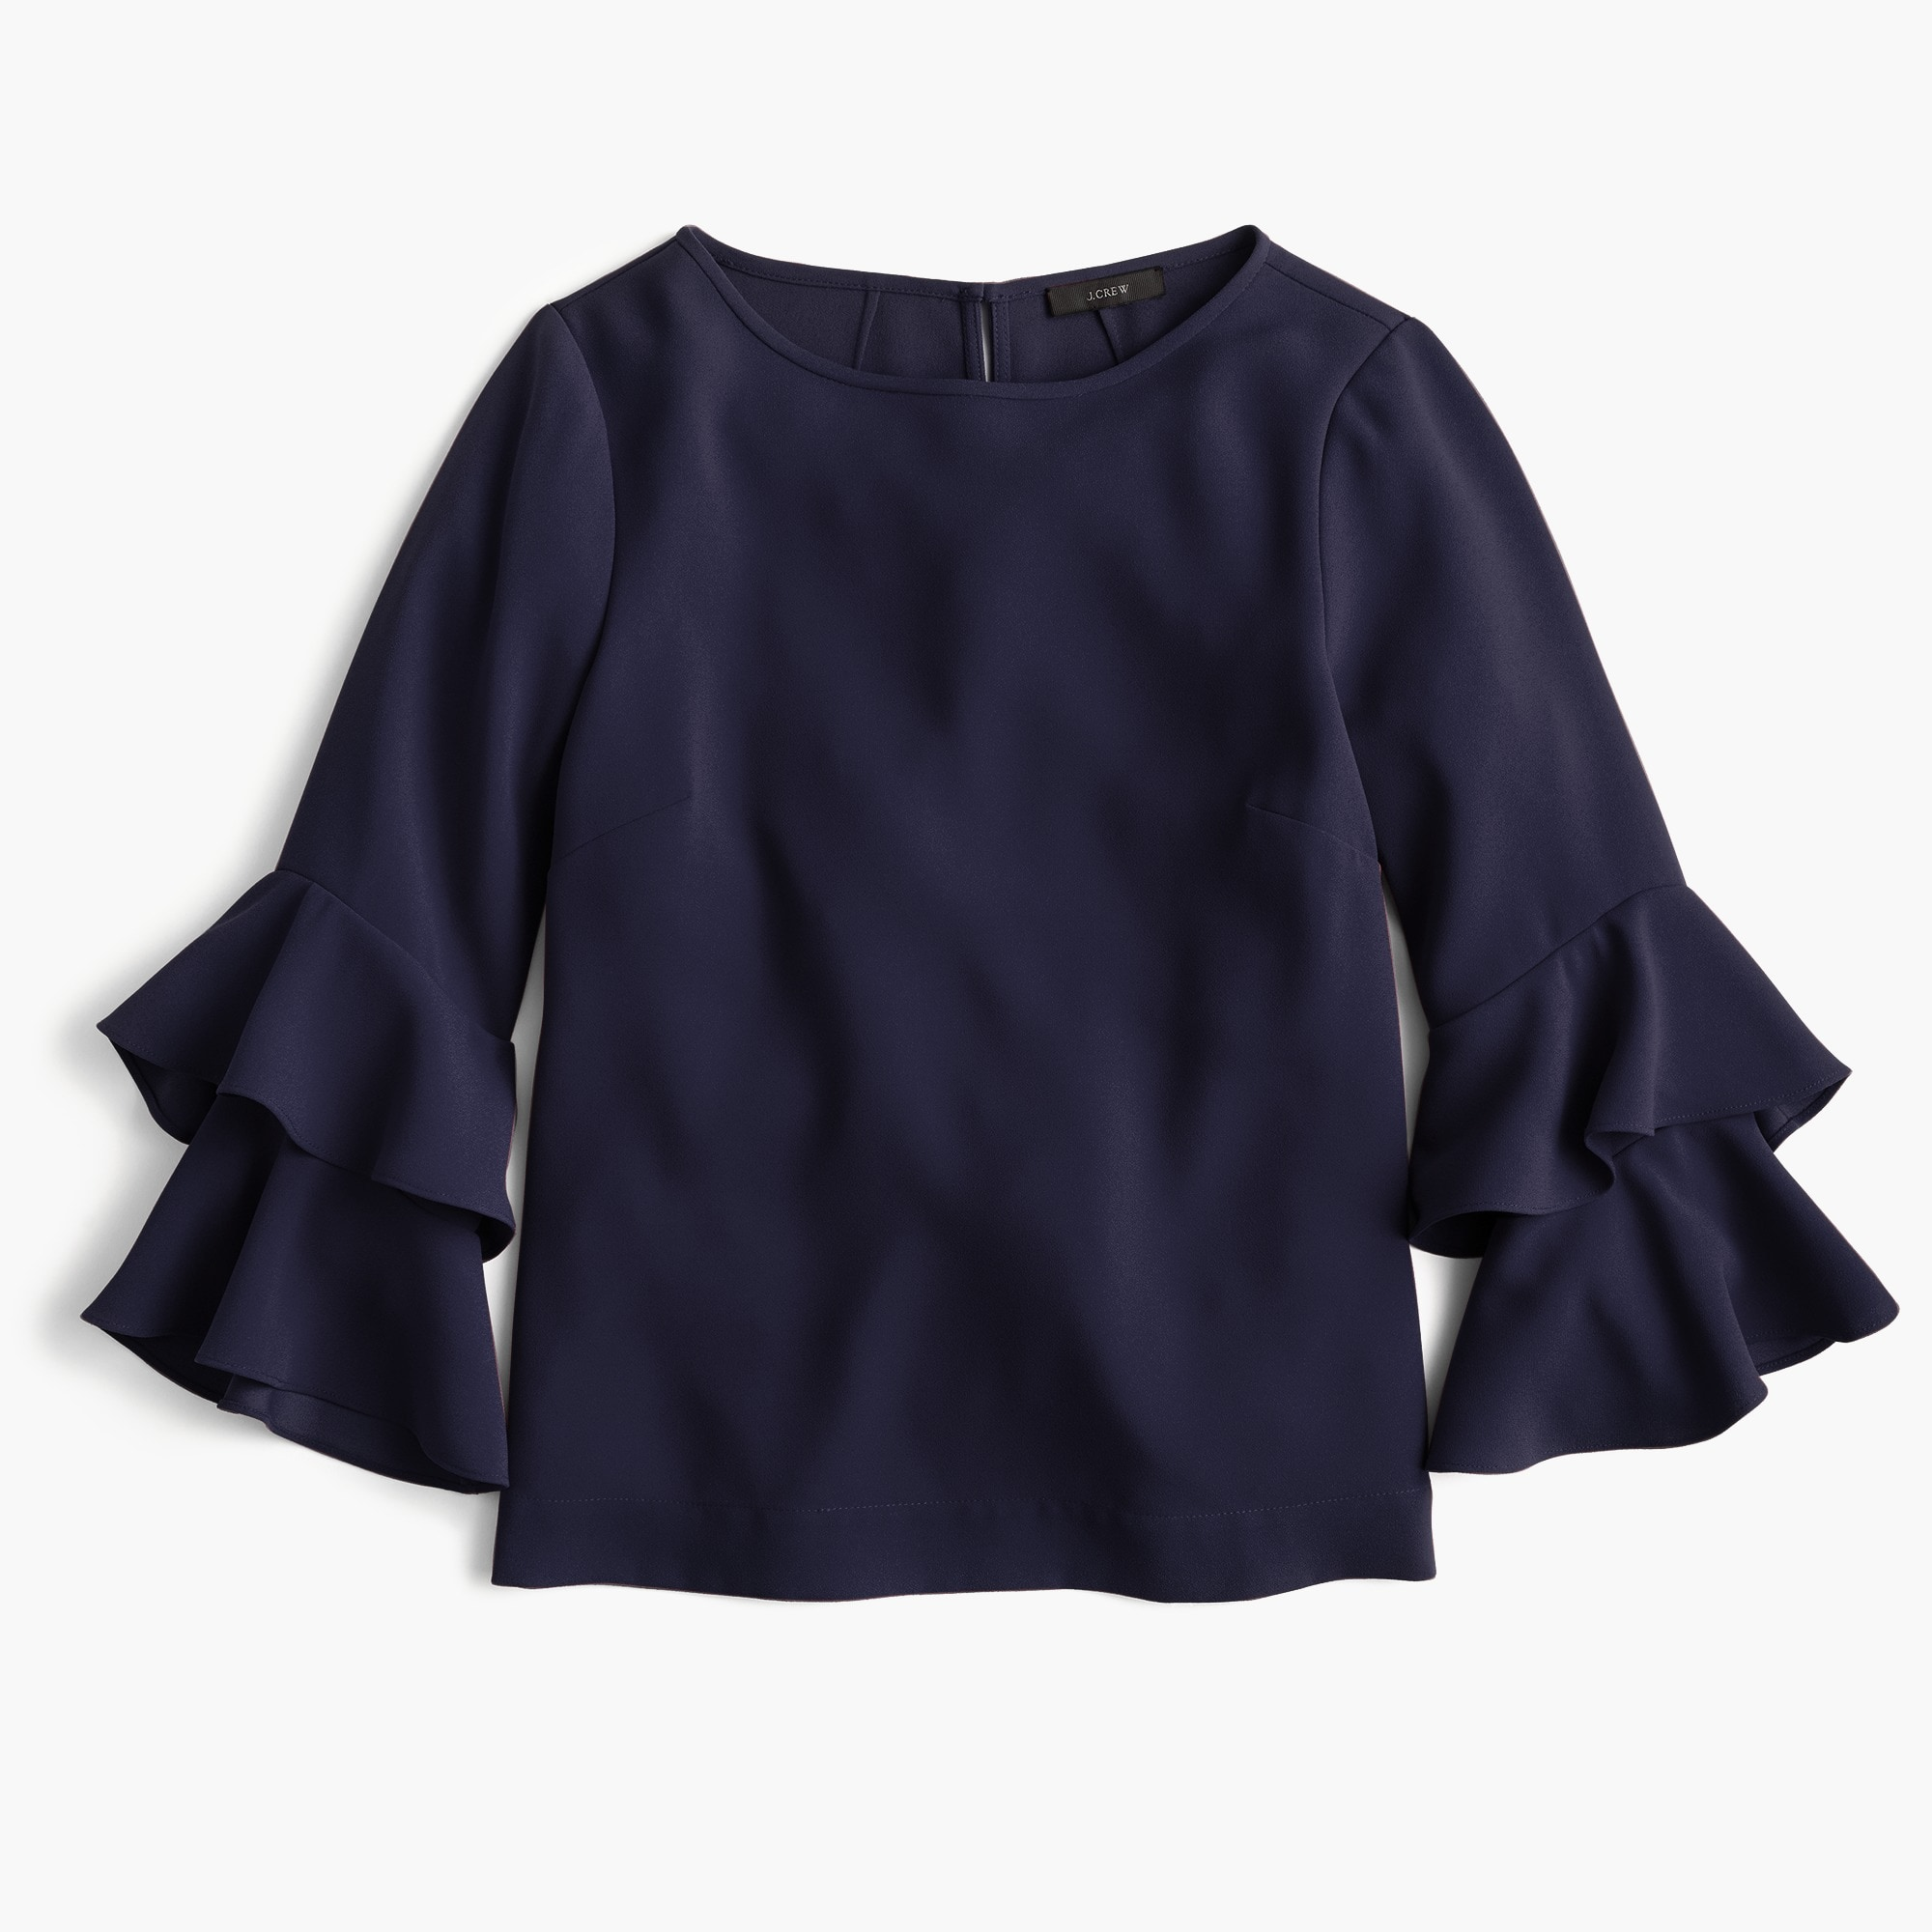 Image 1 for Tall Tiered bell-sleeve top in drapey crepe